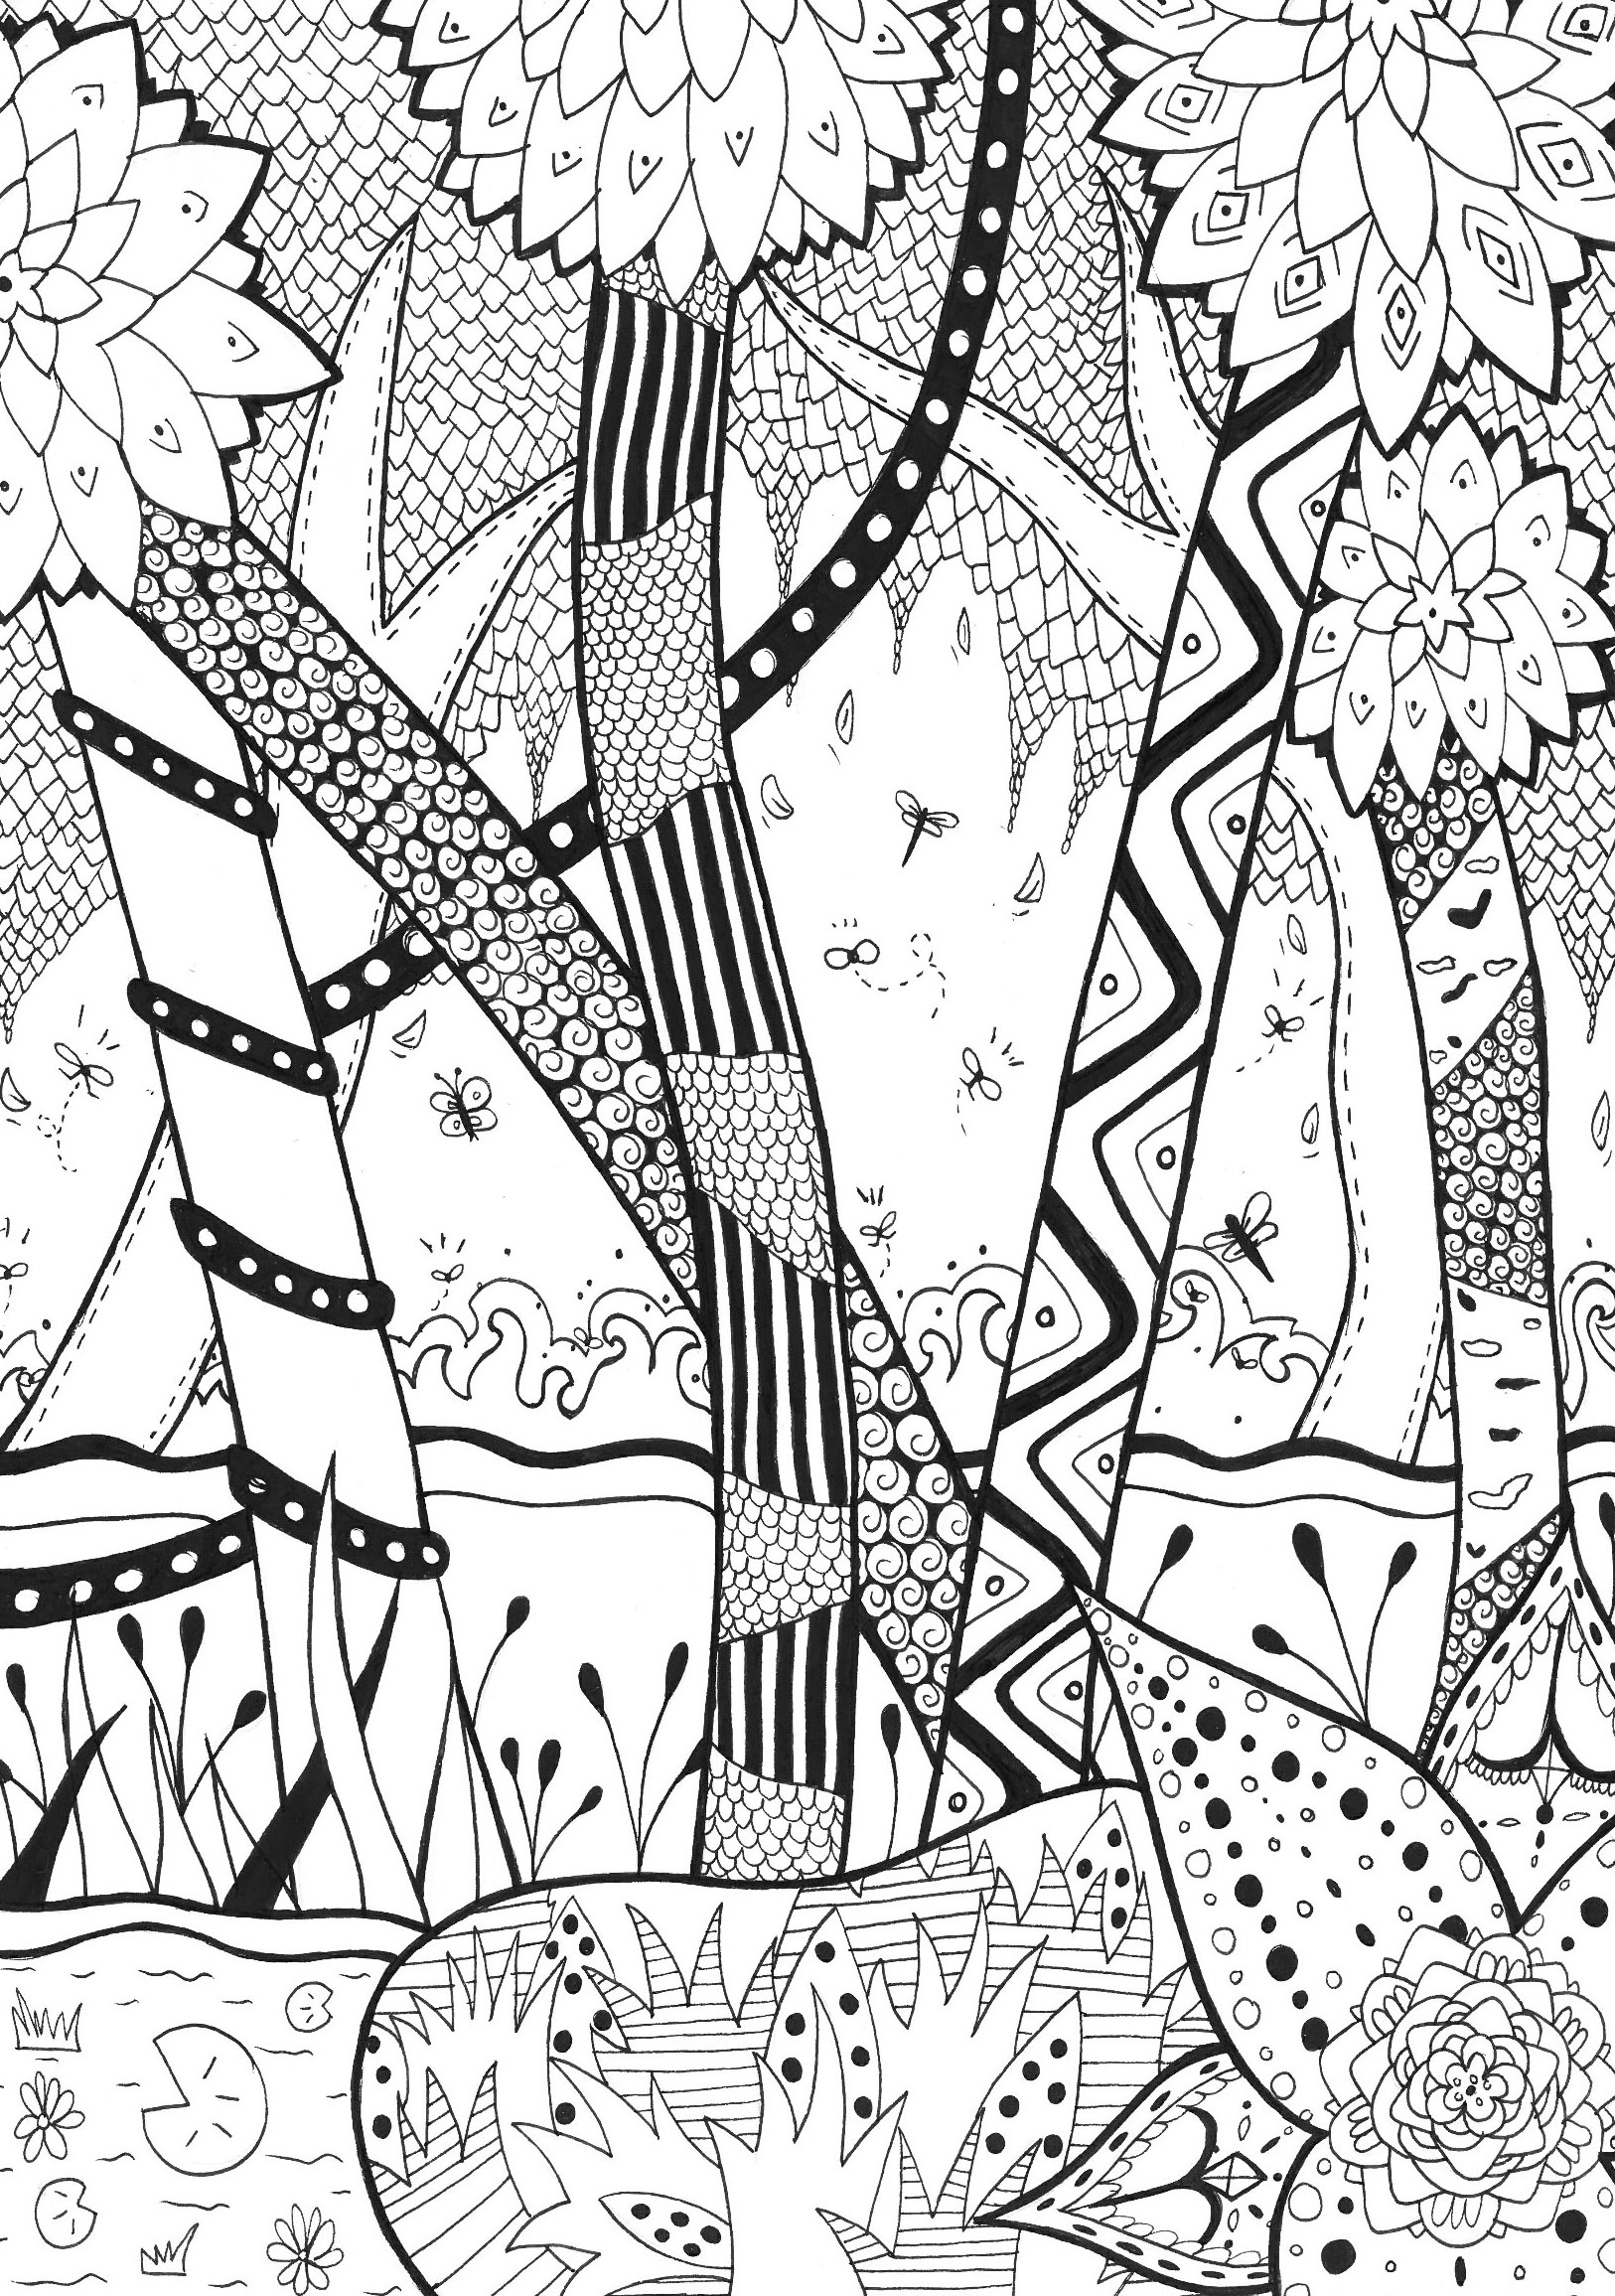 Zentangle to print for free - Zentangle Kids Coloring Pages